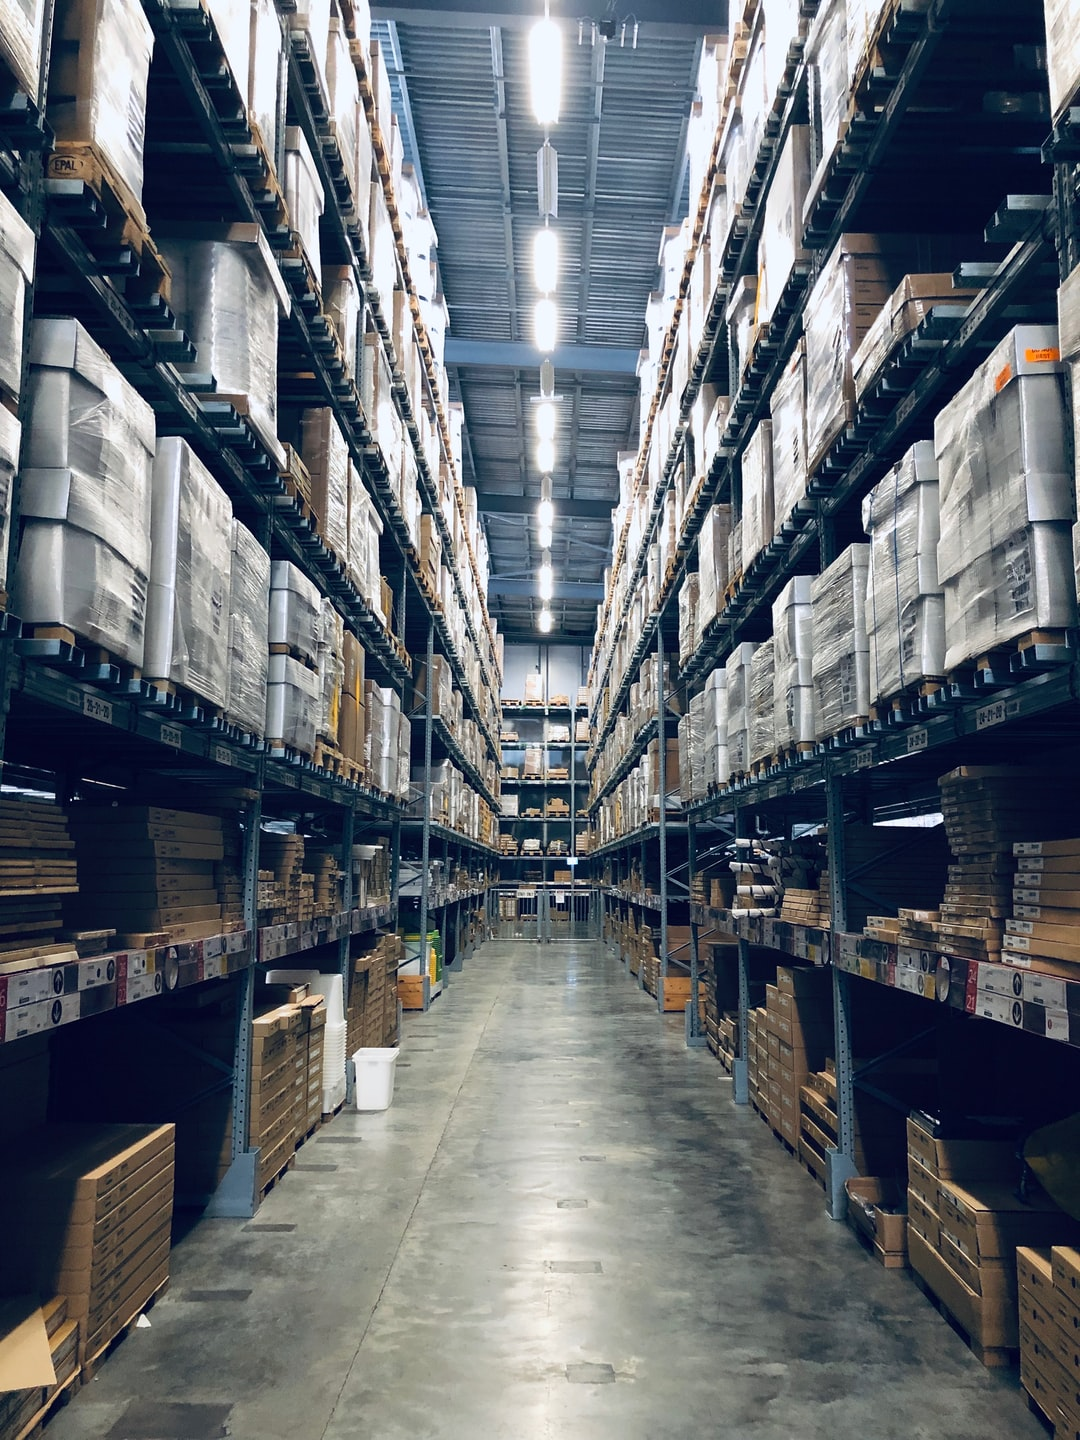 Precisely, the solution we need: Inventory Accuracy